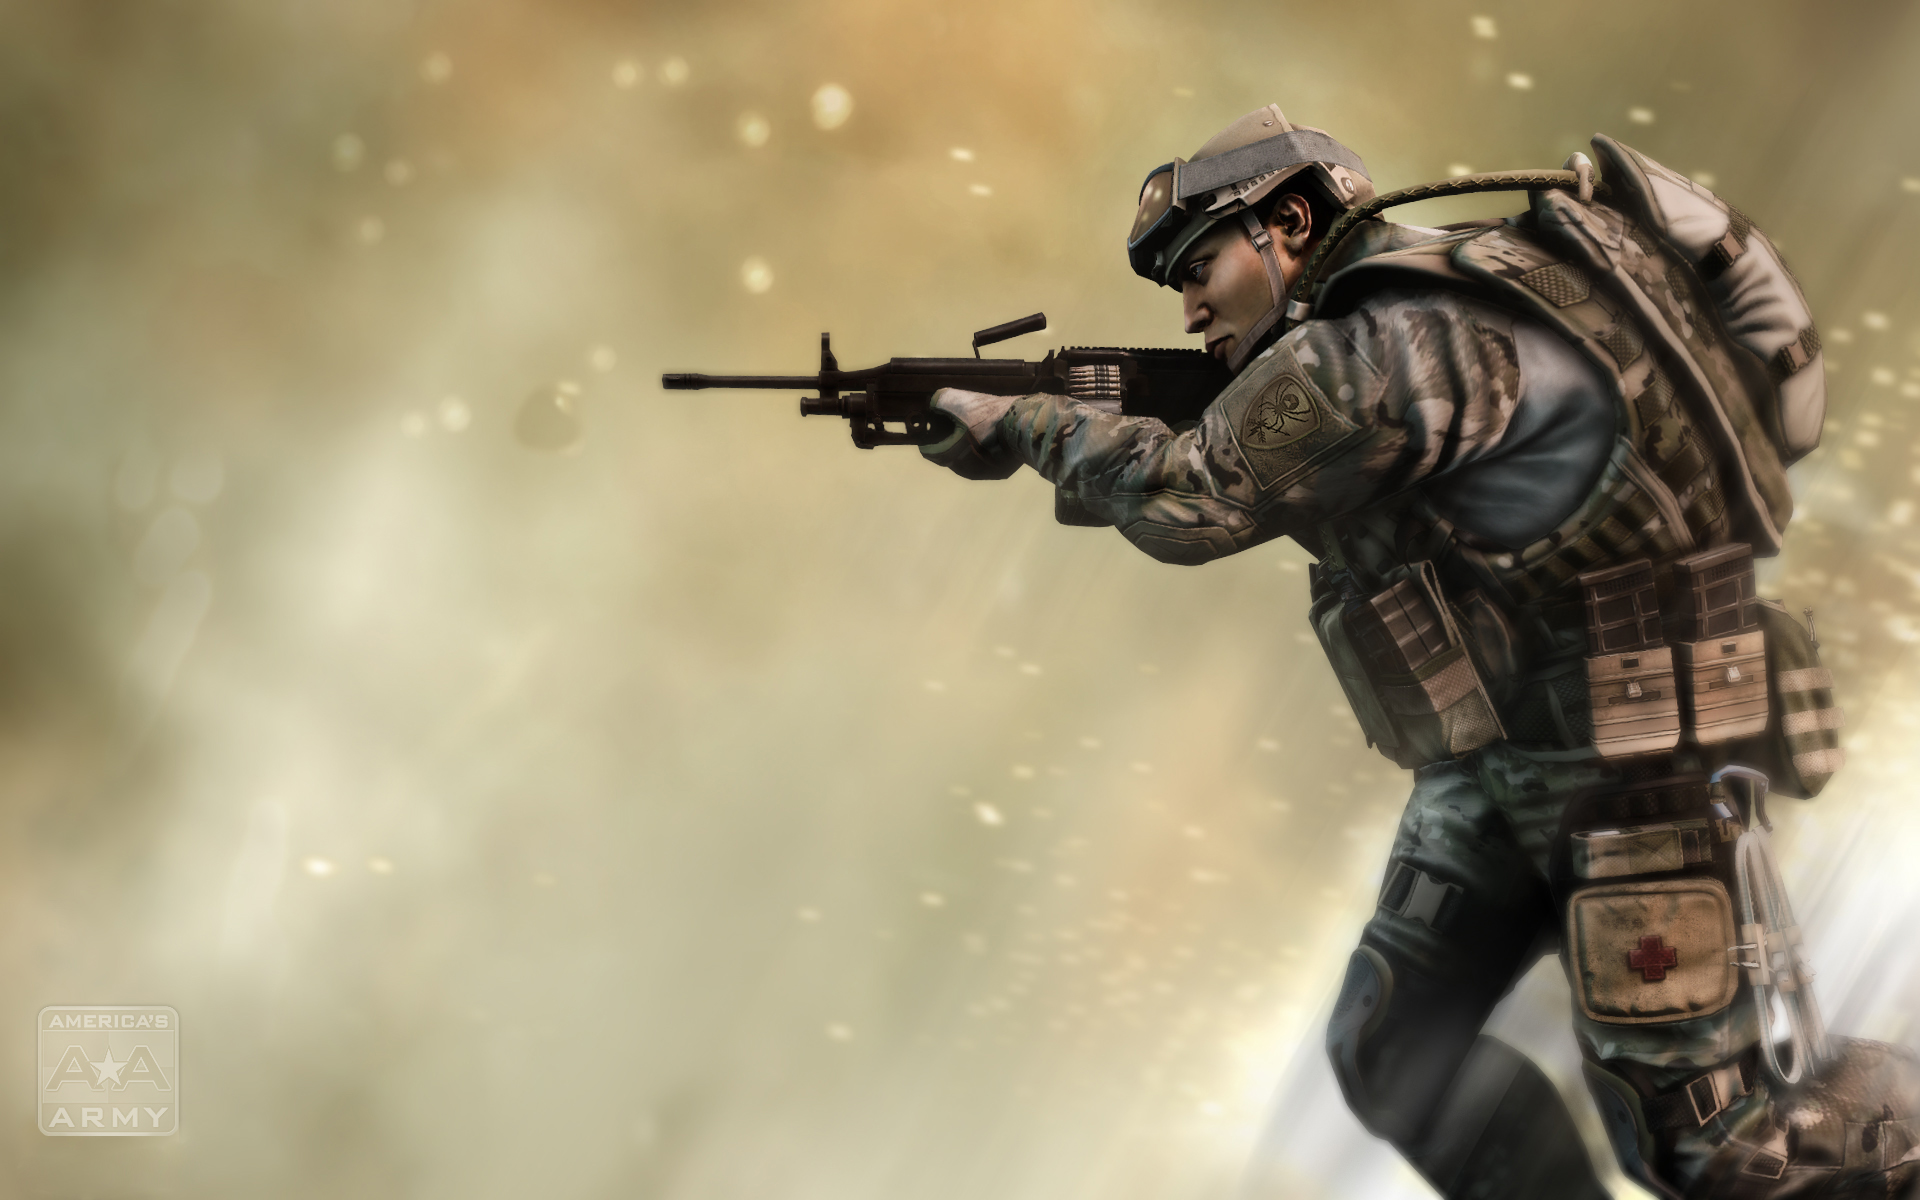 Hd wallpaper indian army - Cool Military Army Wallpaper Games 675 Wallpaper With 1920x1200